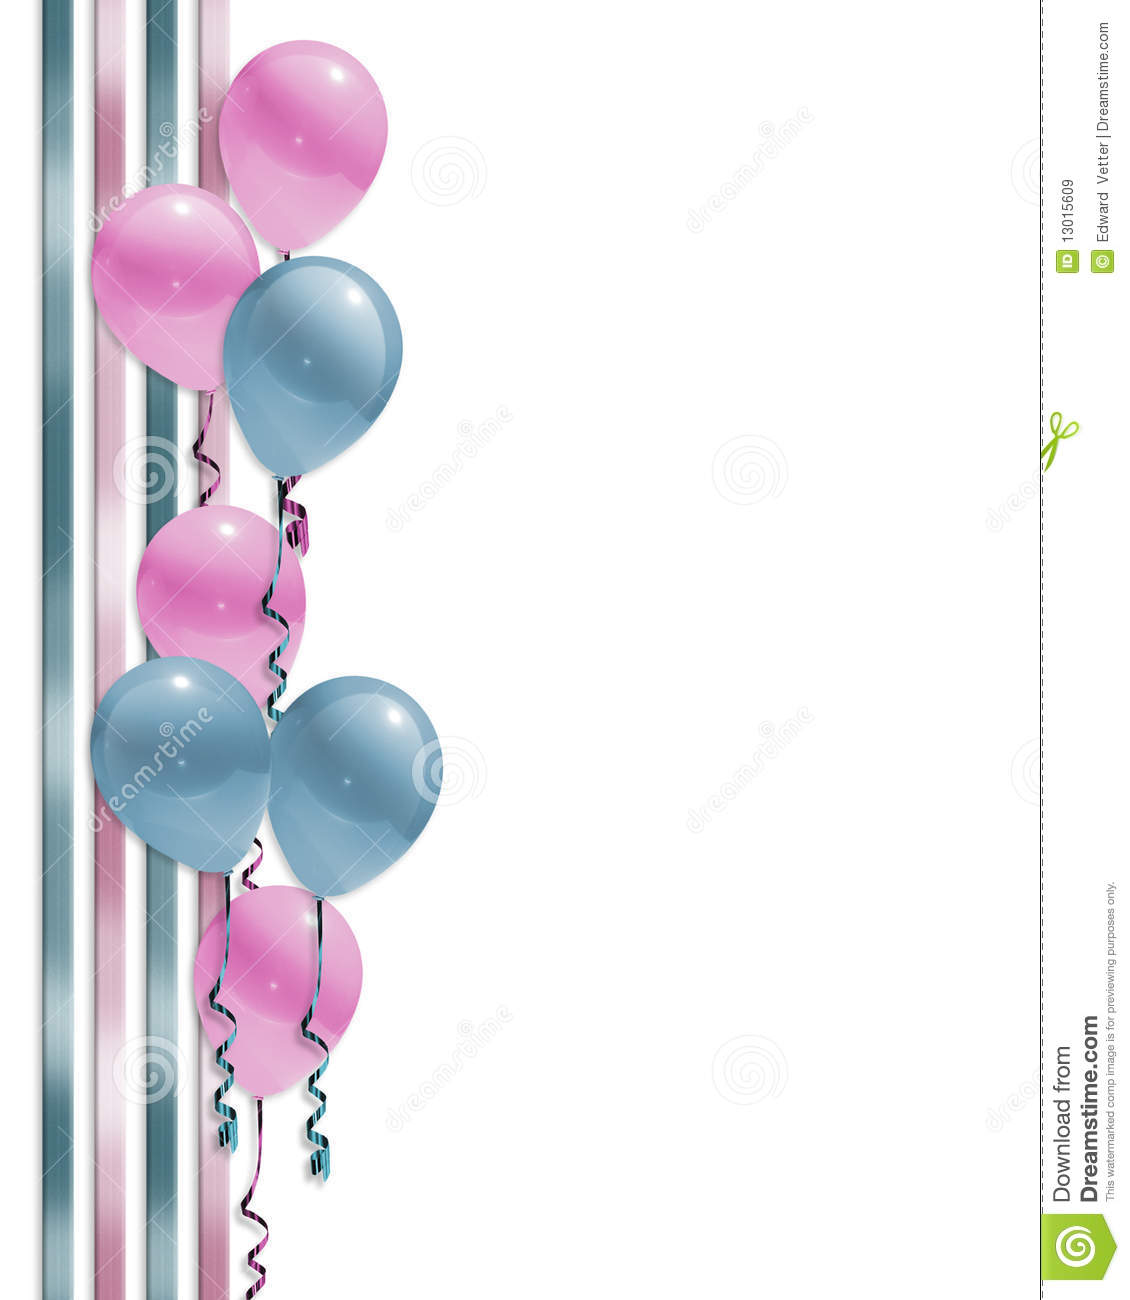 Baby Shower Balloons Border Stock Illustration - Illustration of ...